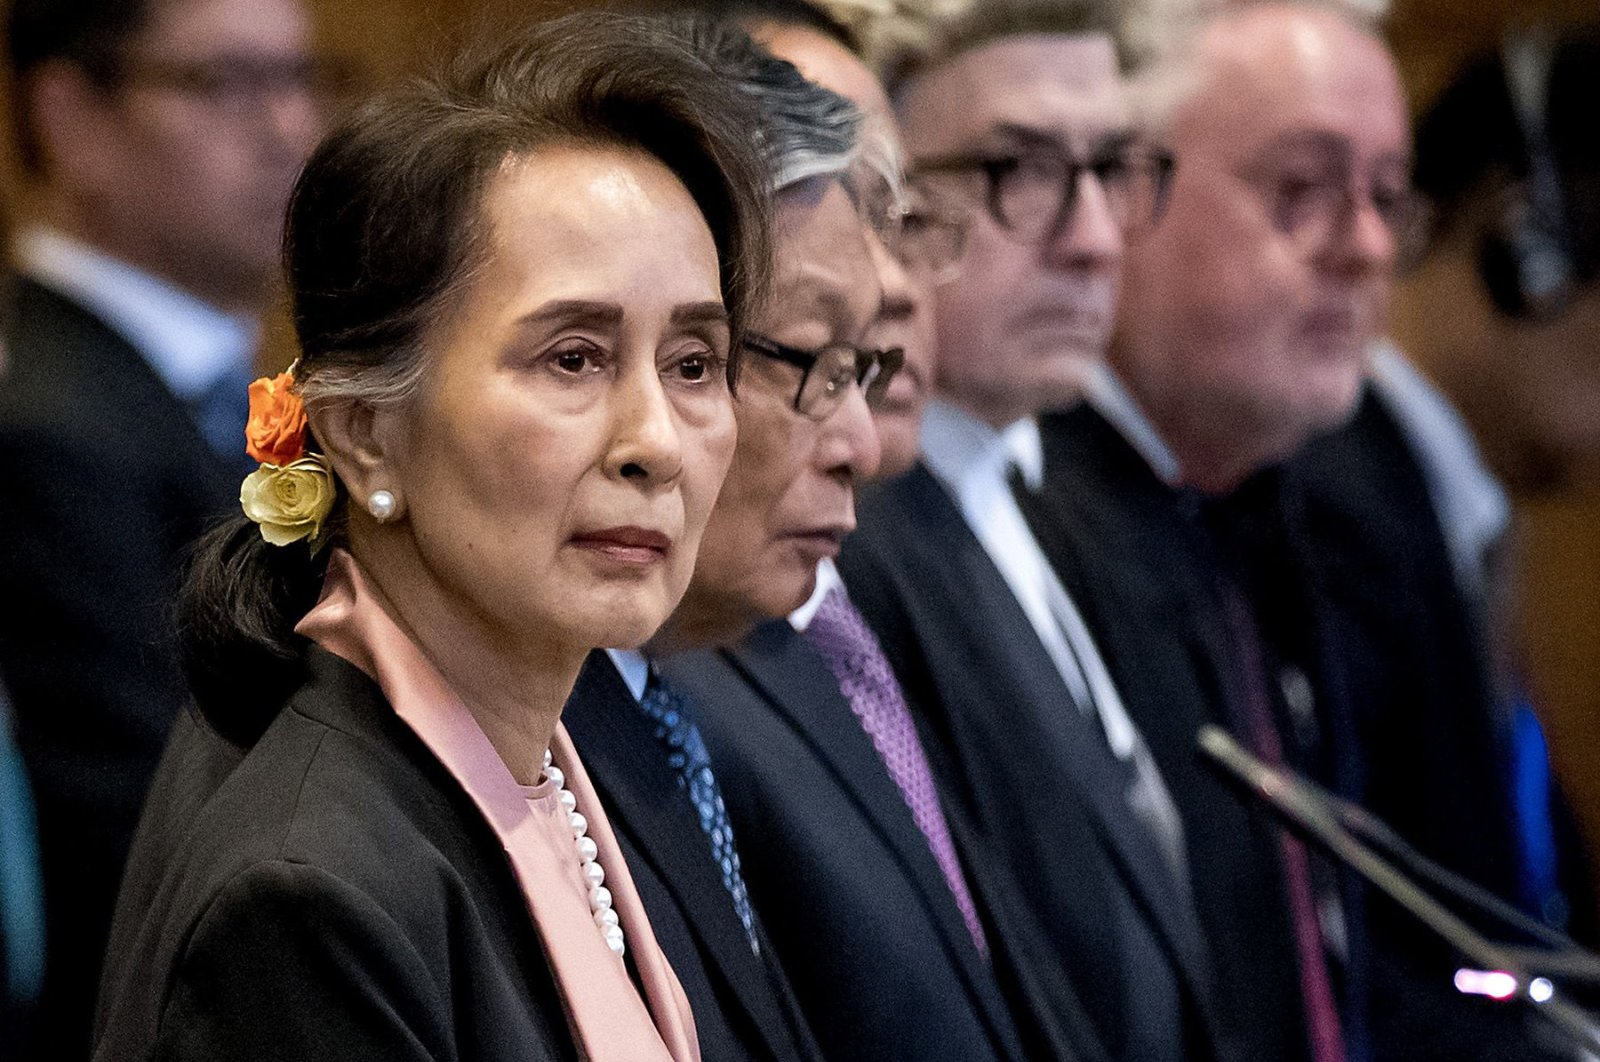 Myanmar's State Counsellor Aung San Suu Kyi stands before the United Nation's International Court of Justice in the Peace Palace of The Hague, Dec. 10, 2019. (AFP Photo)